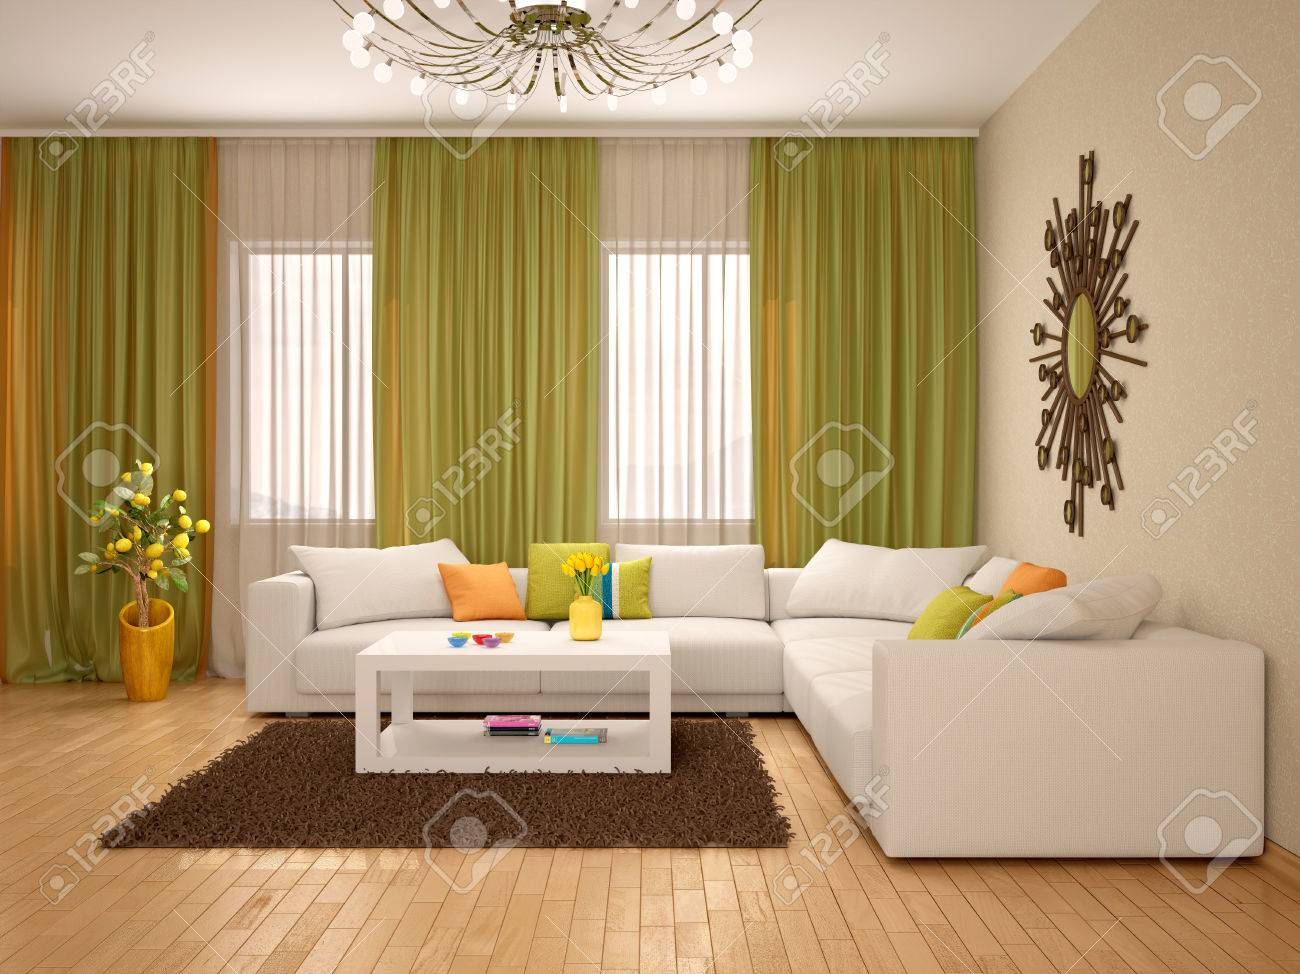 3d Illustration Of Interior Of Modern Living Room Warm Colors Stock Photo Picture And Royalty Free Image Image 56781936